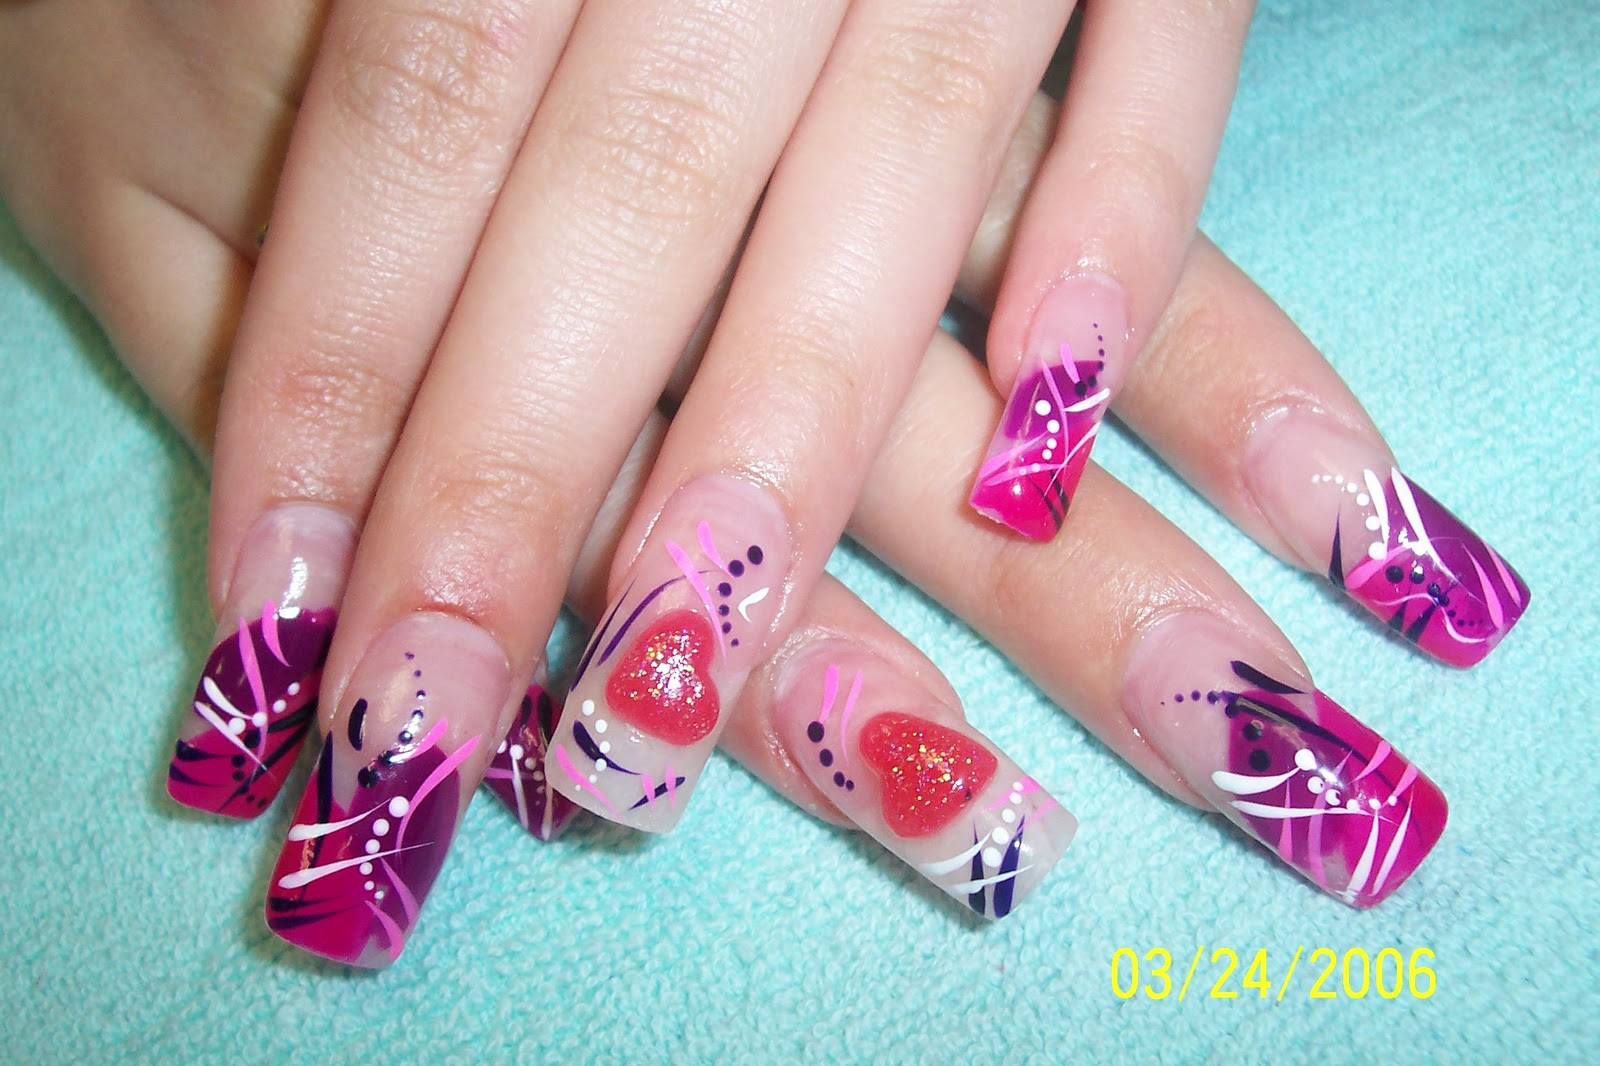 Exquisite Nail Art Designs For Your Inspiration | Bloggs74